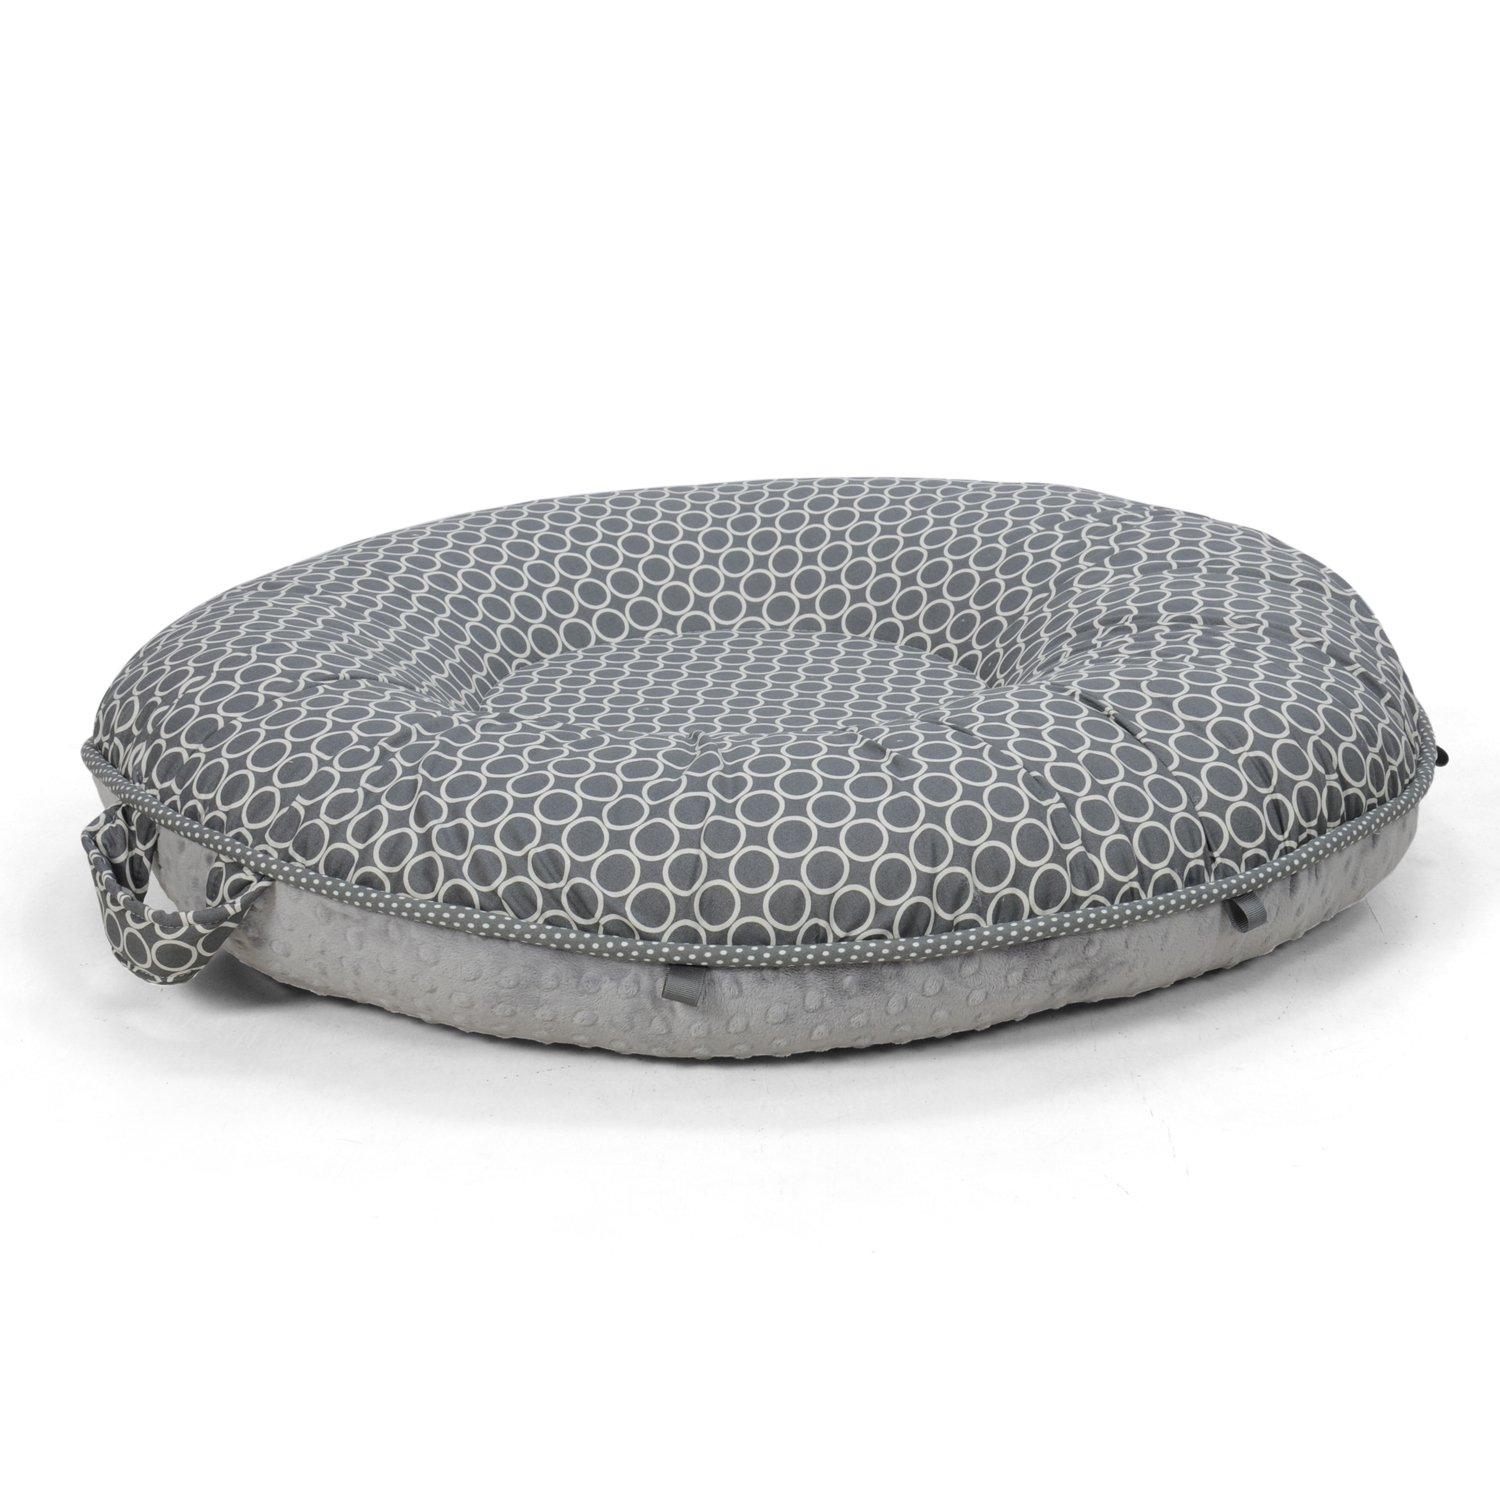 Pello Multi-use Luxe Baby-Toddler Floor Pillow/Play Mat/Lounger (Majestic/Gray)